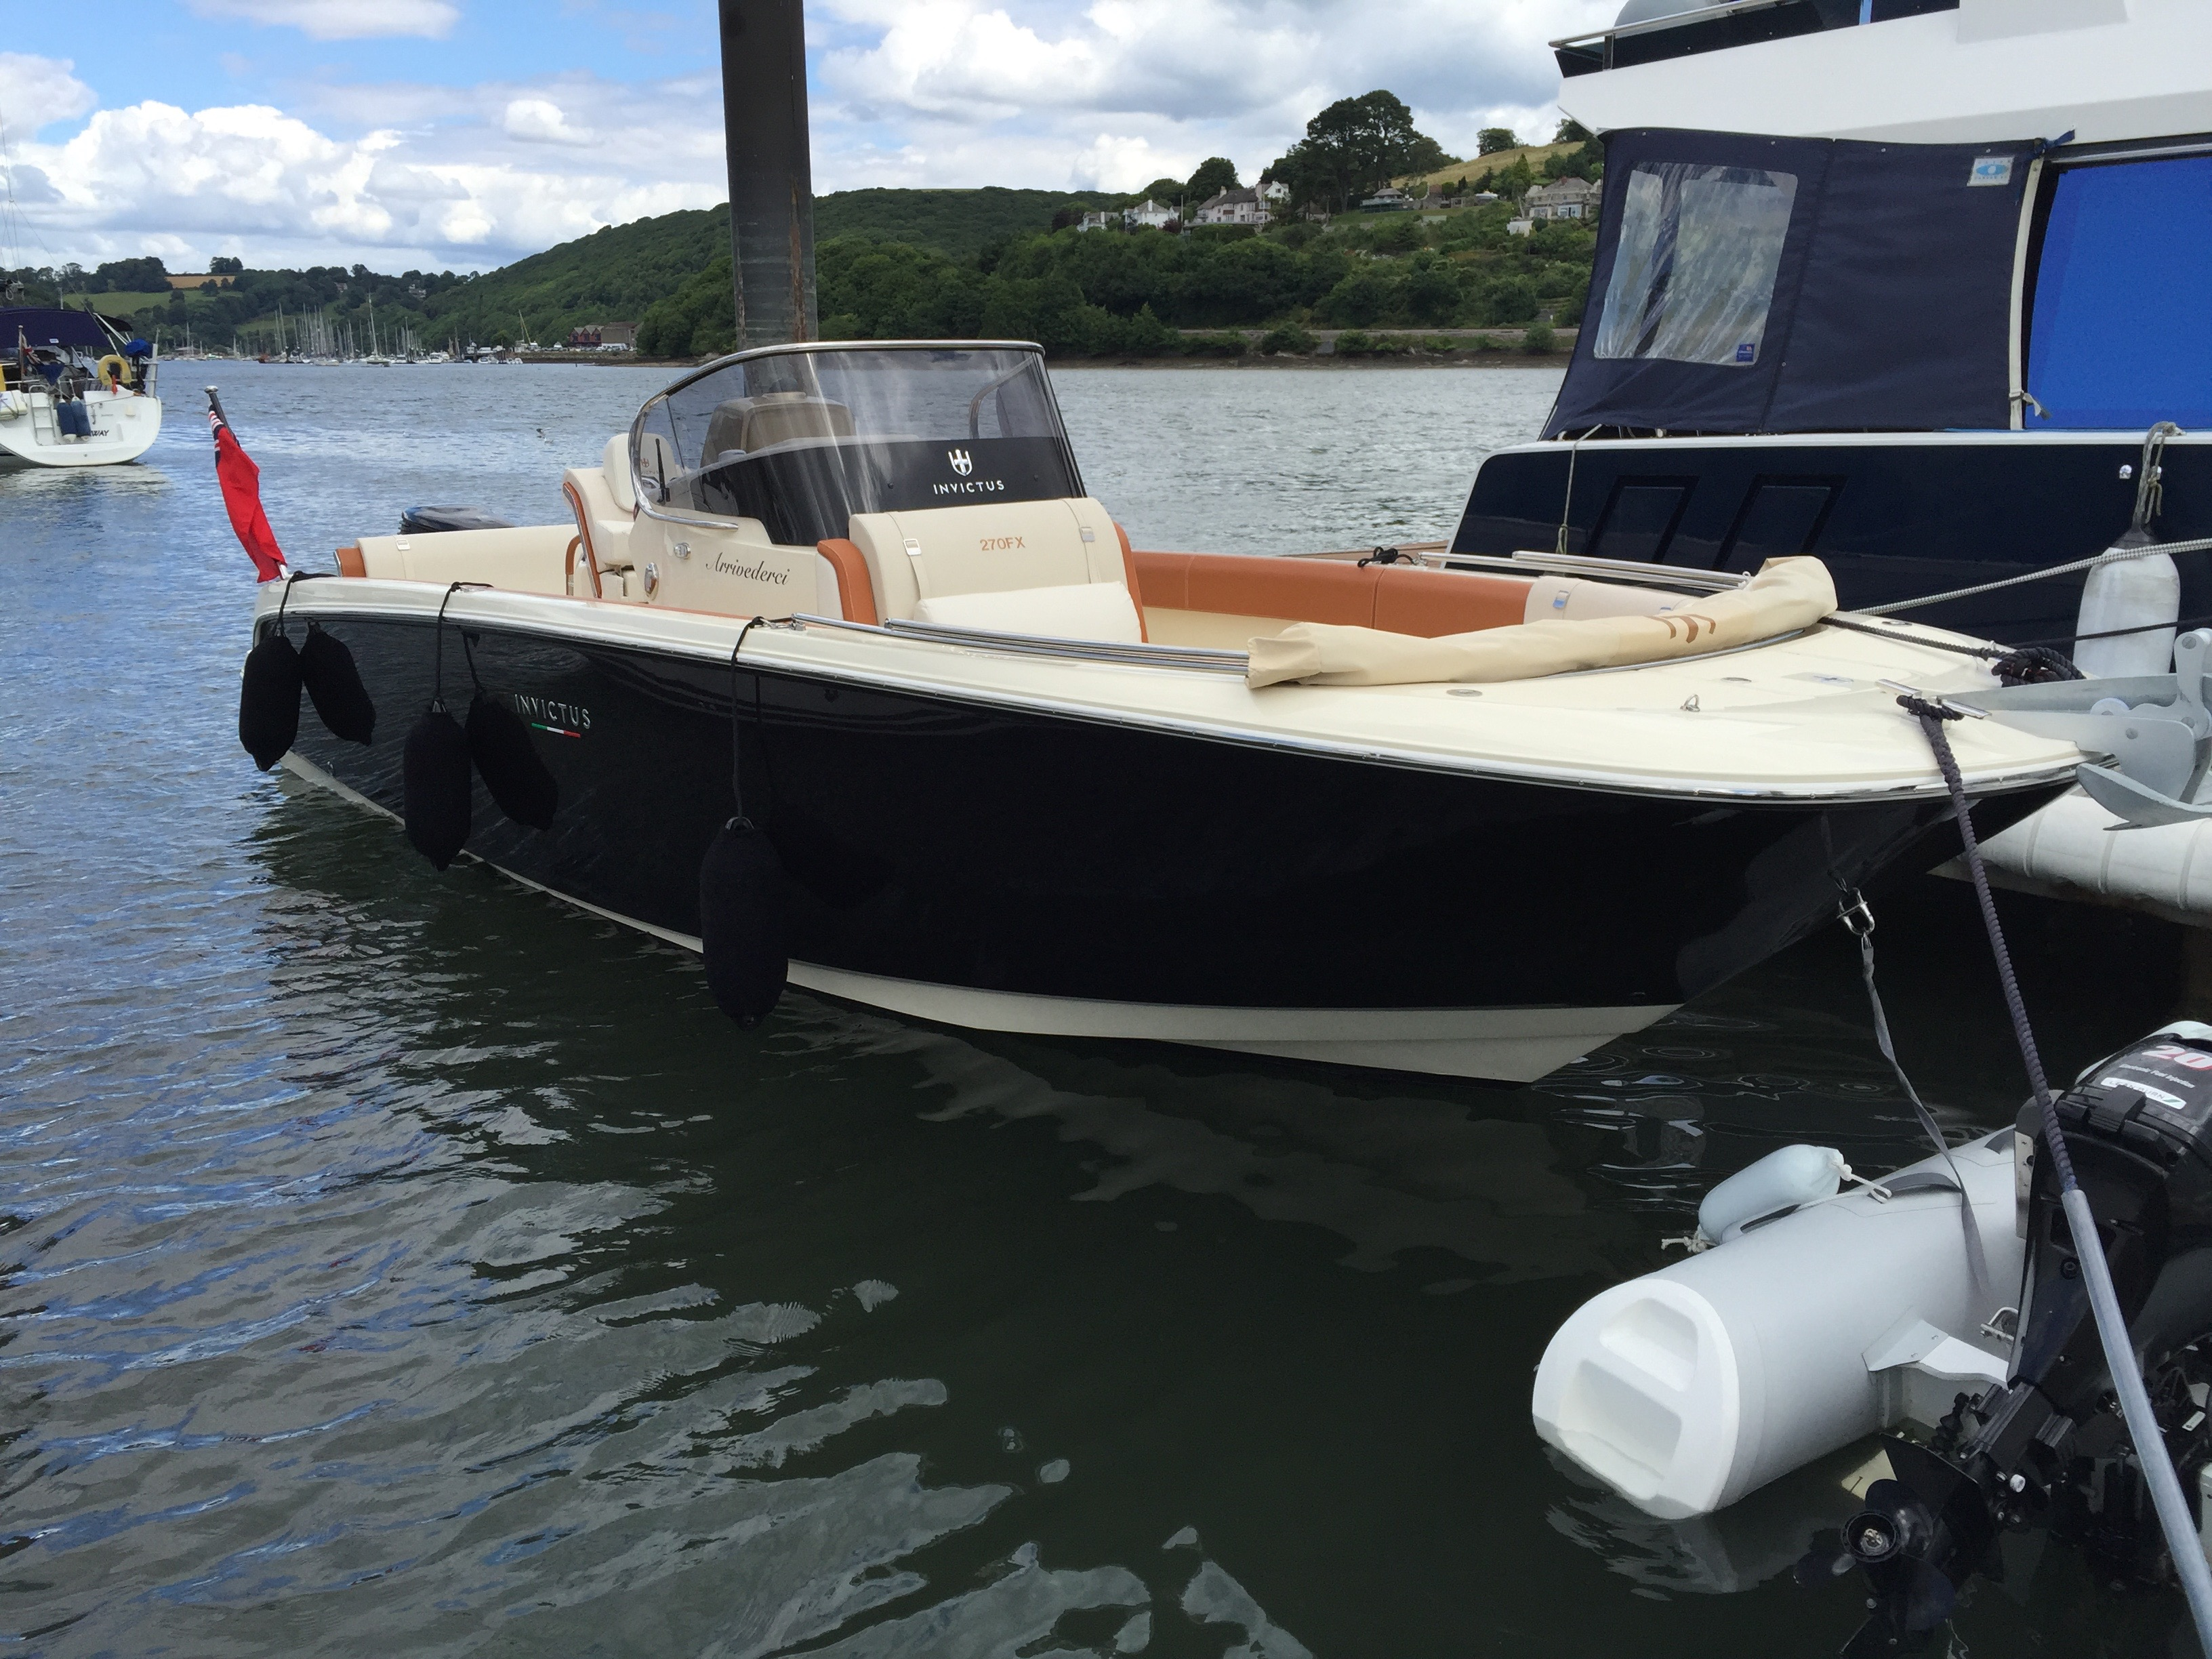 Invictus 270FX on her berth at Dart Marina